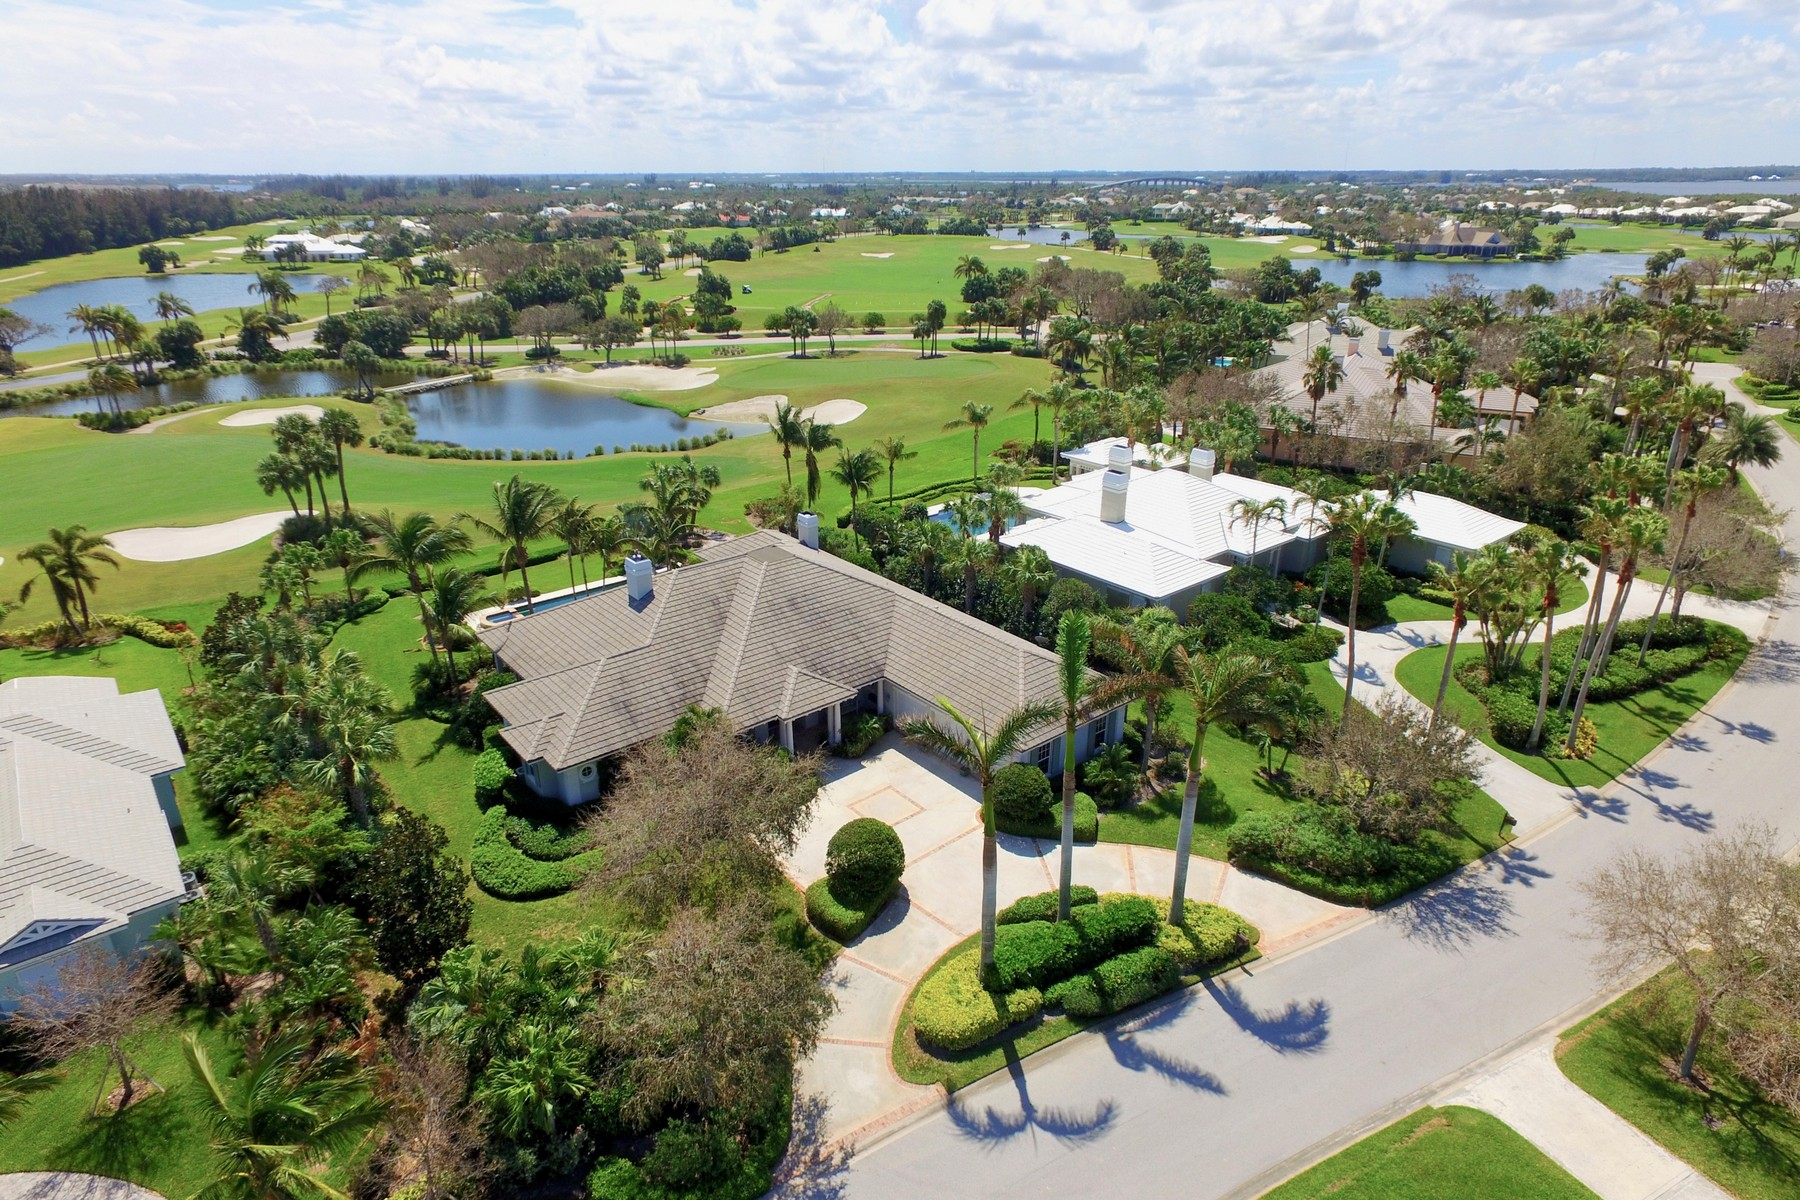 Maison unifamiliale pour l Vente à Lakefront Home with Endless Golf Views 130 Seaspray Lane Vero Beach, Florida 32963 États-Unis